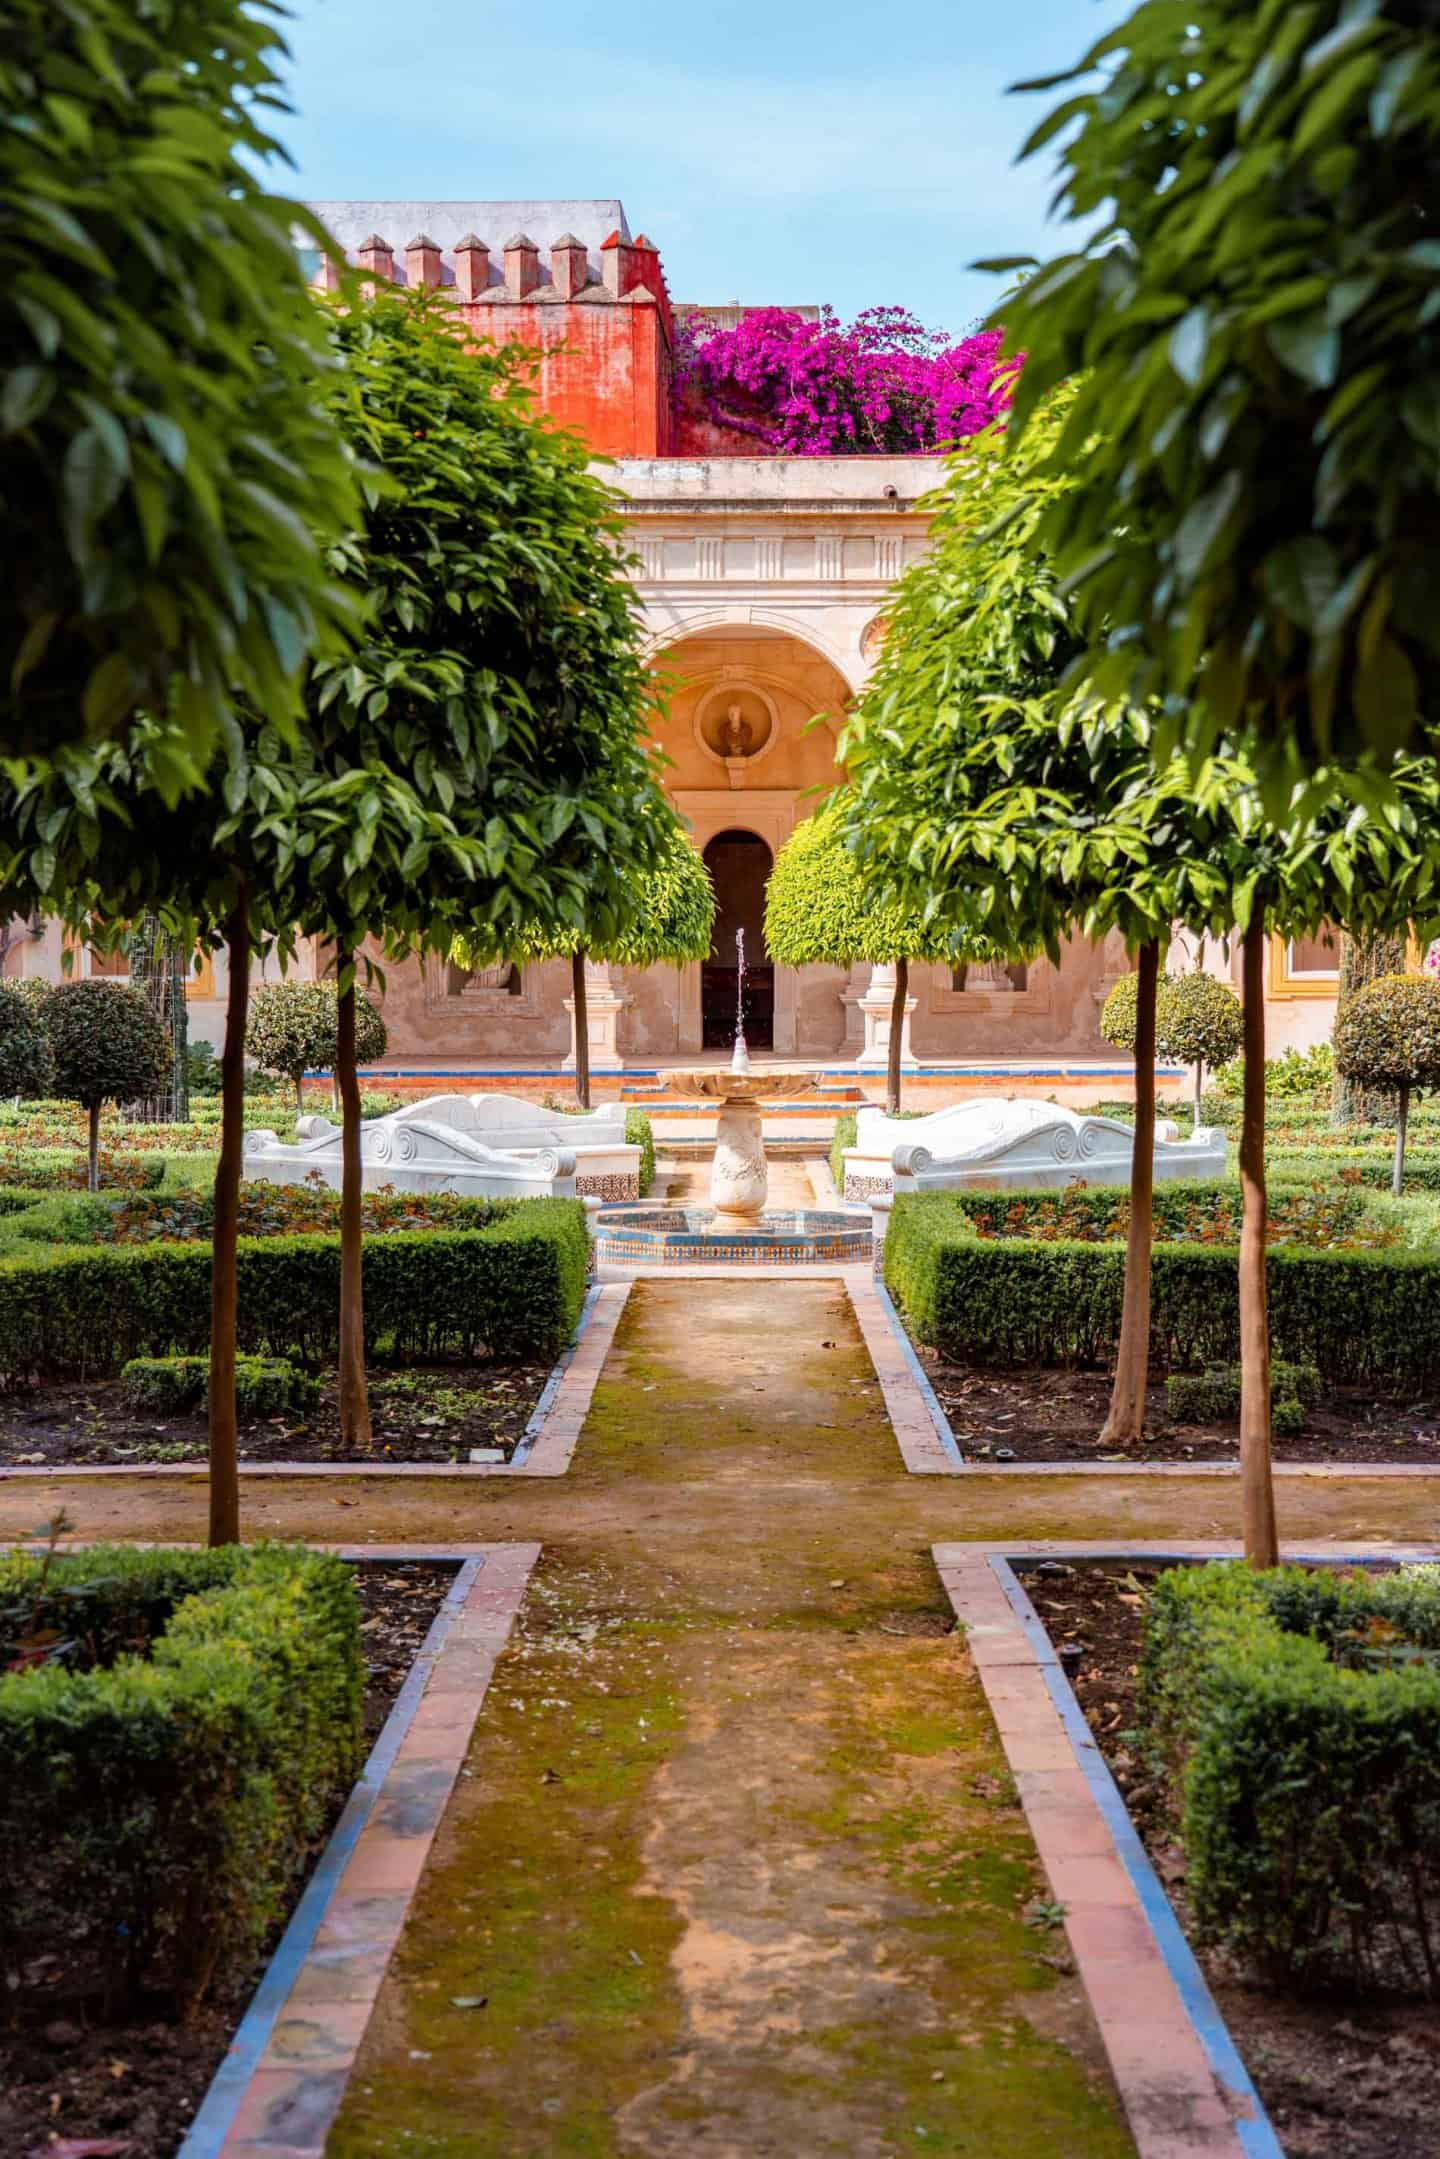 Garden of Casa de Pilatos Seville Spain